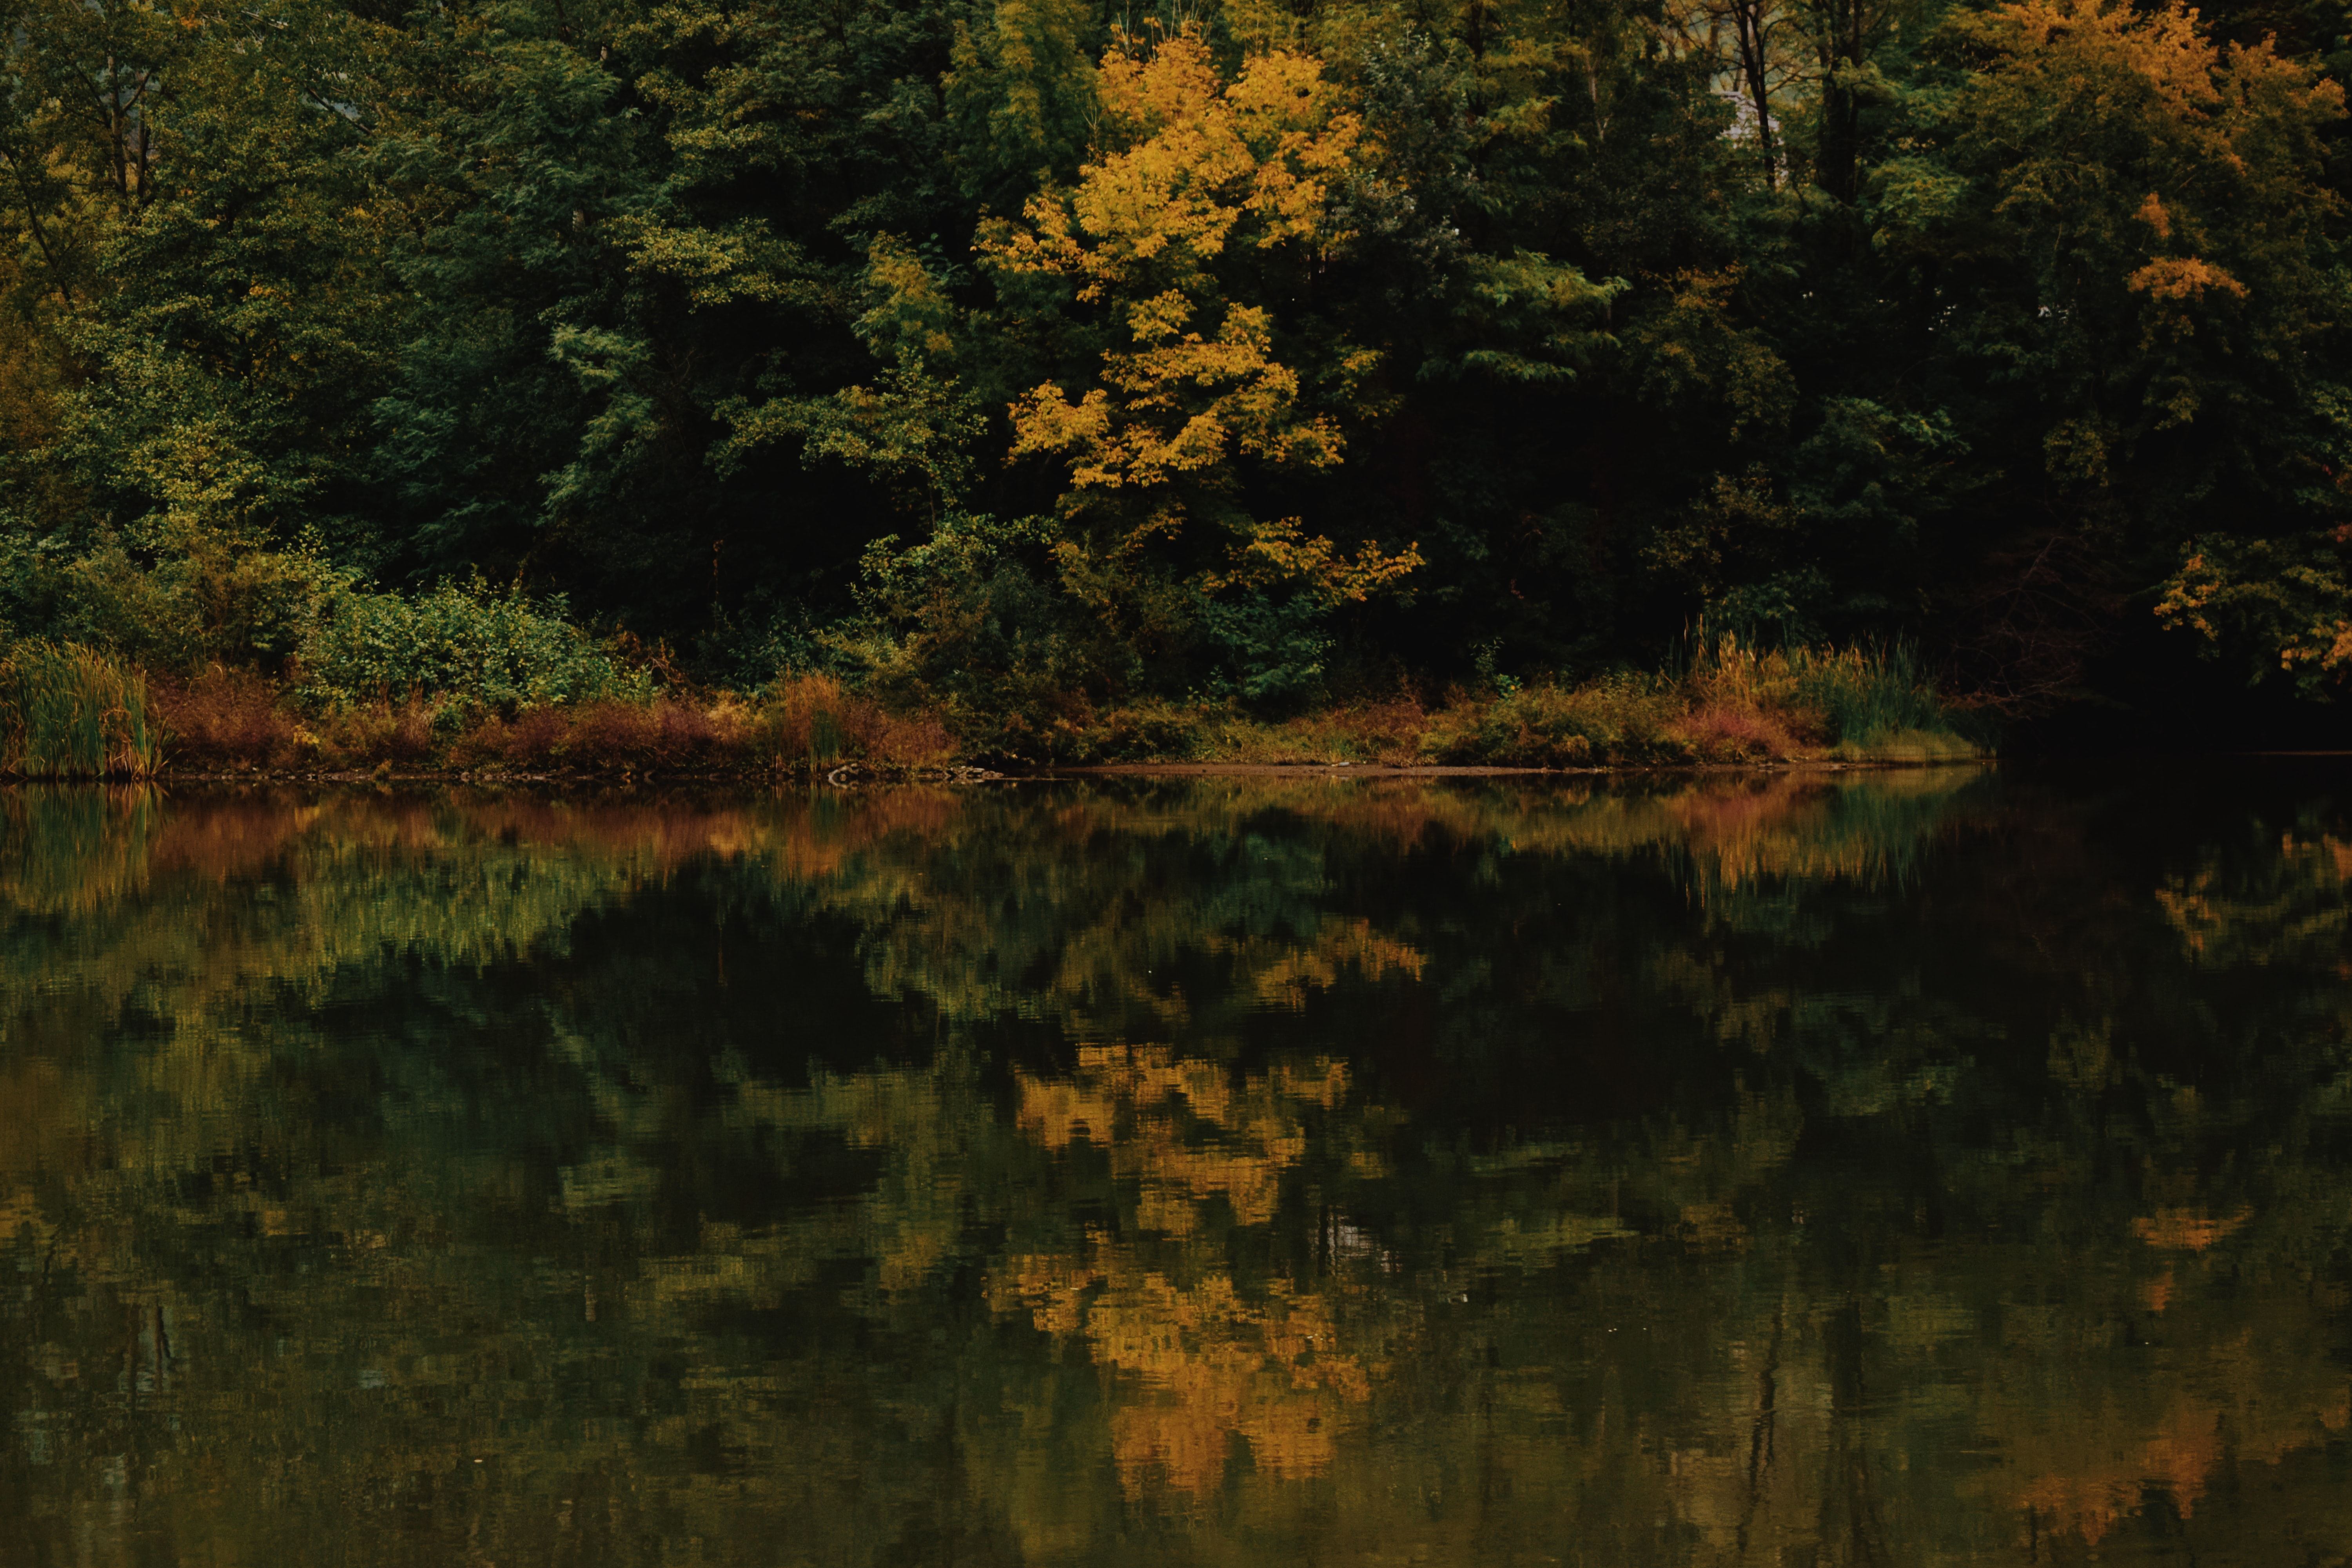 yellow and green forest landscape